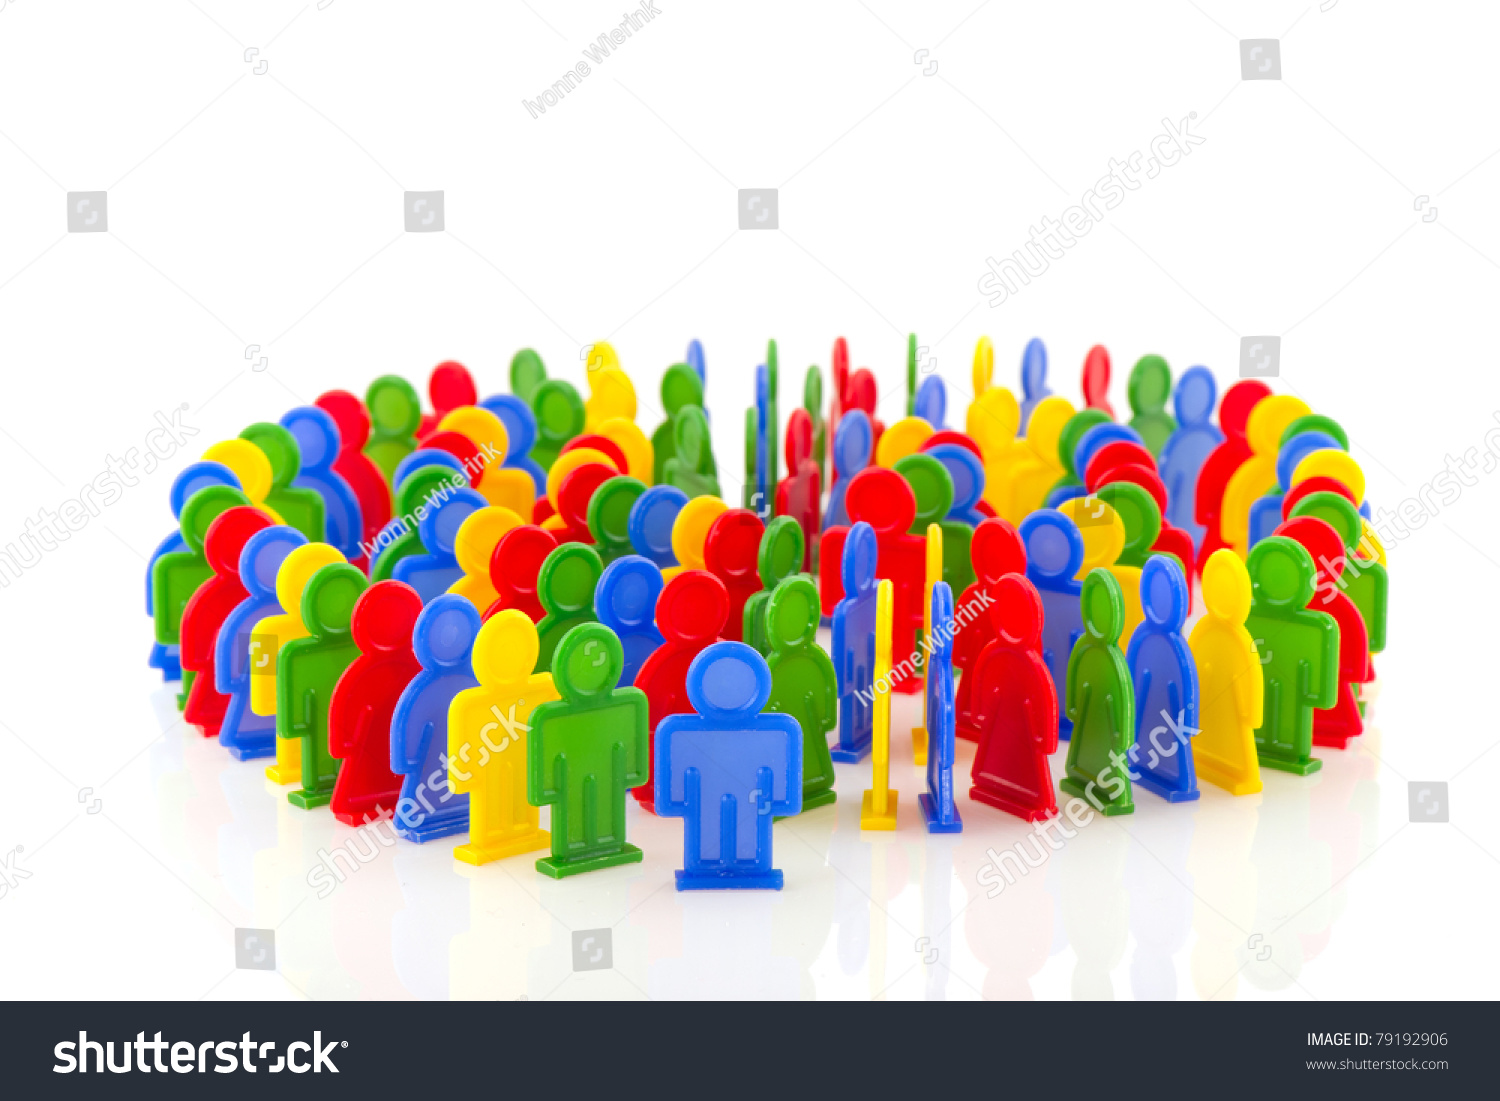 Circle Colorful People Domino Effect Stock Photo 79192906 ... Colorful People